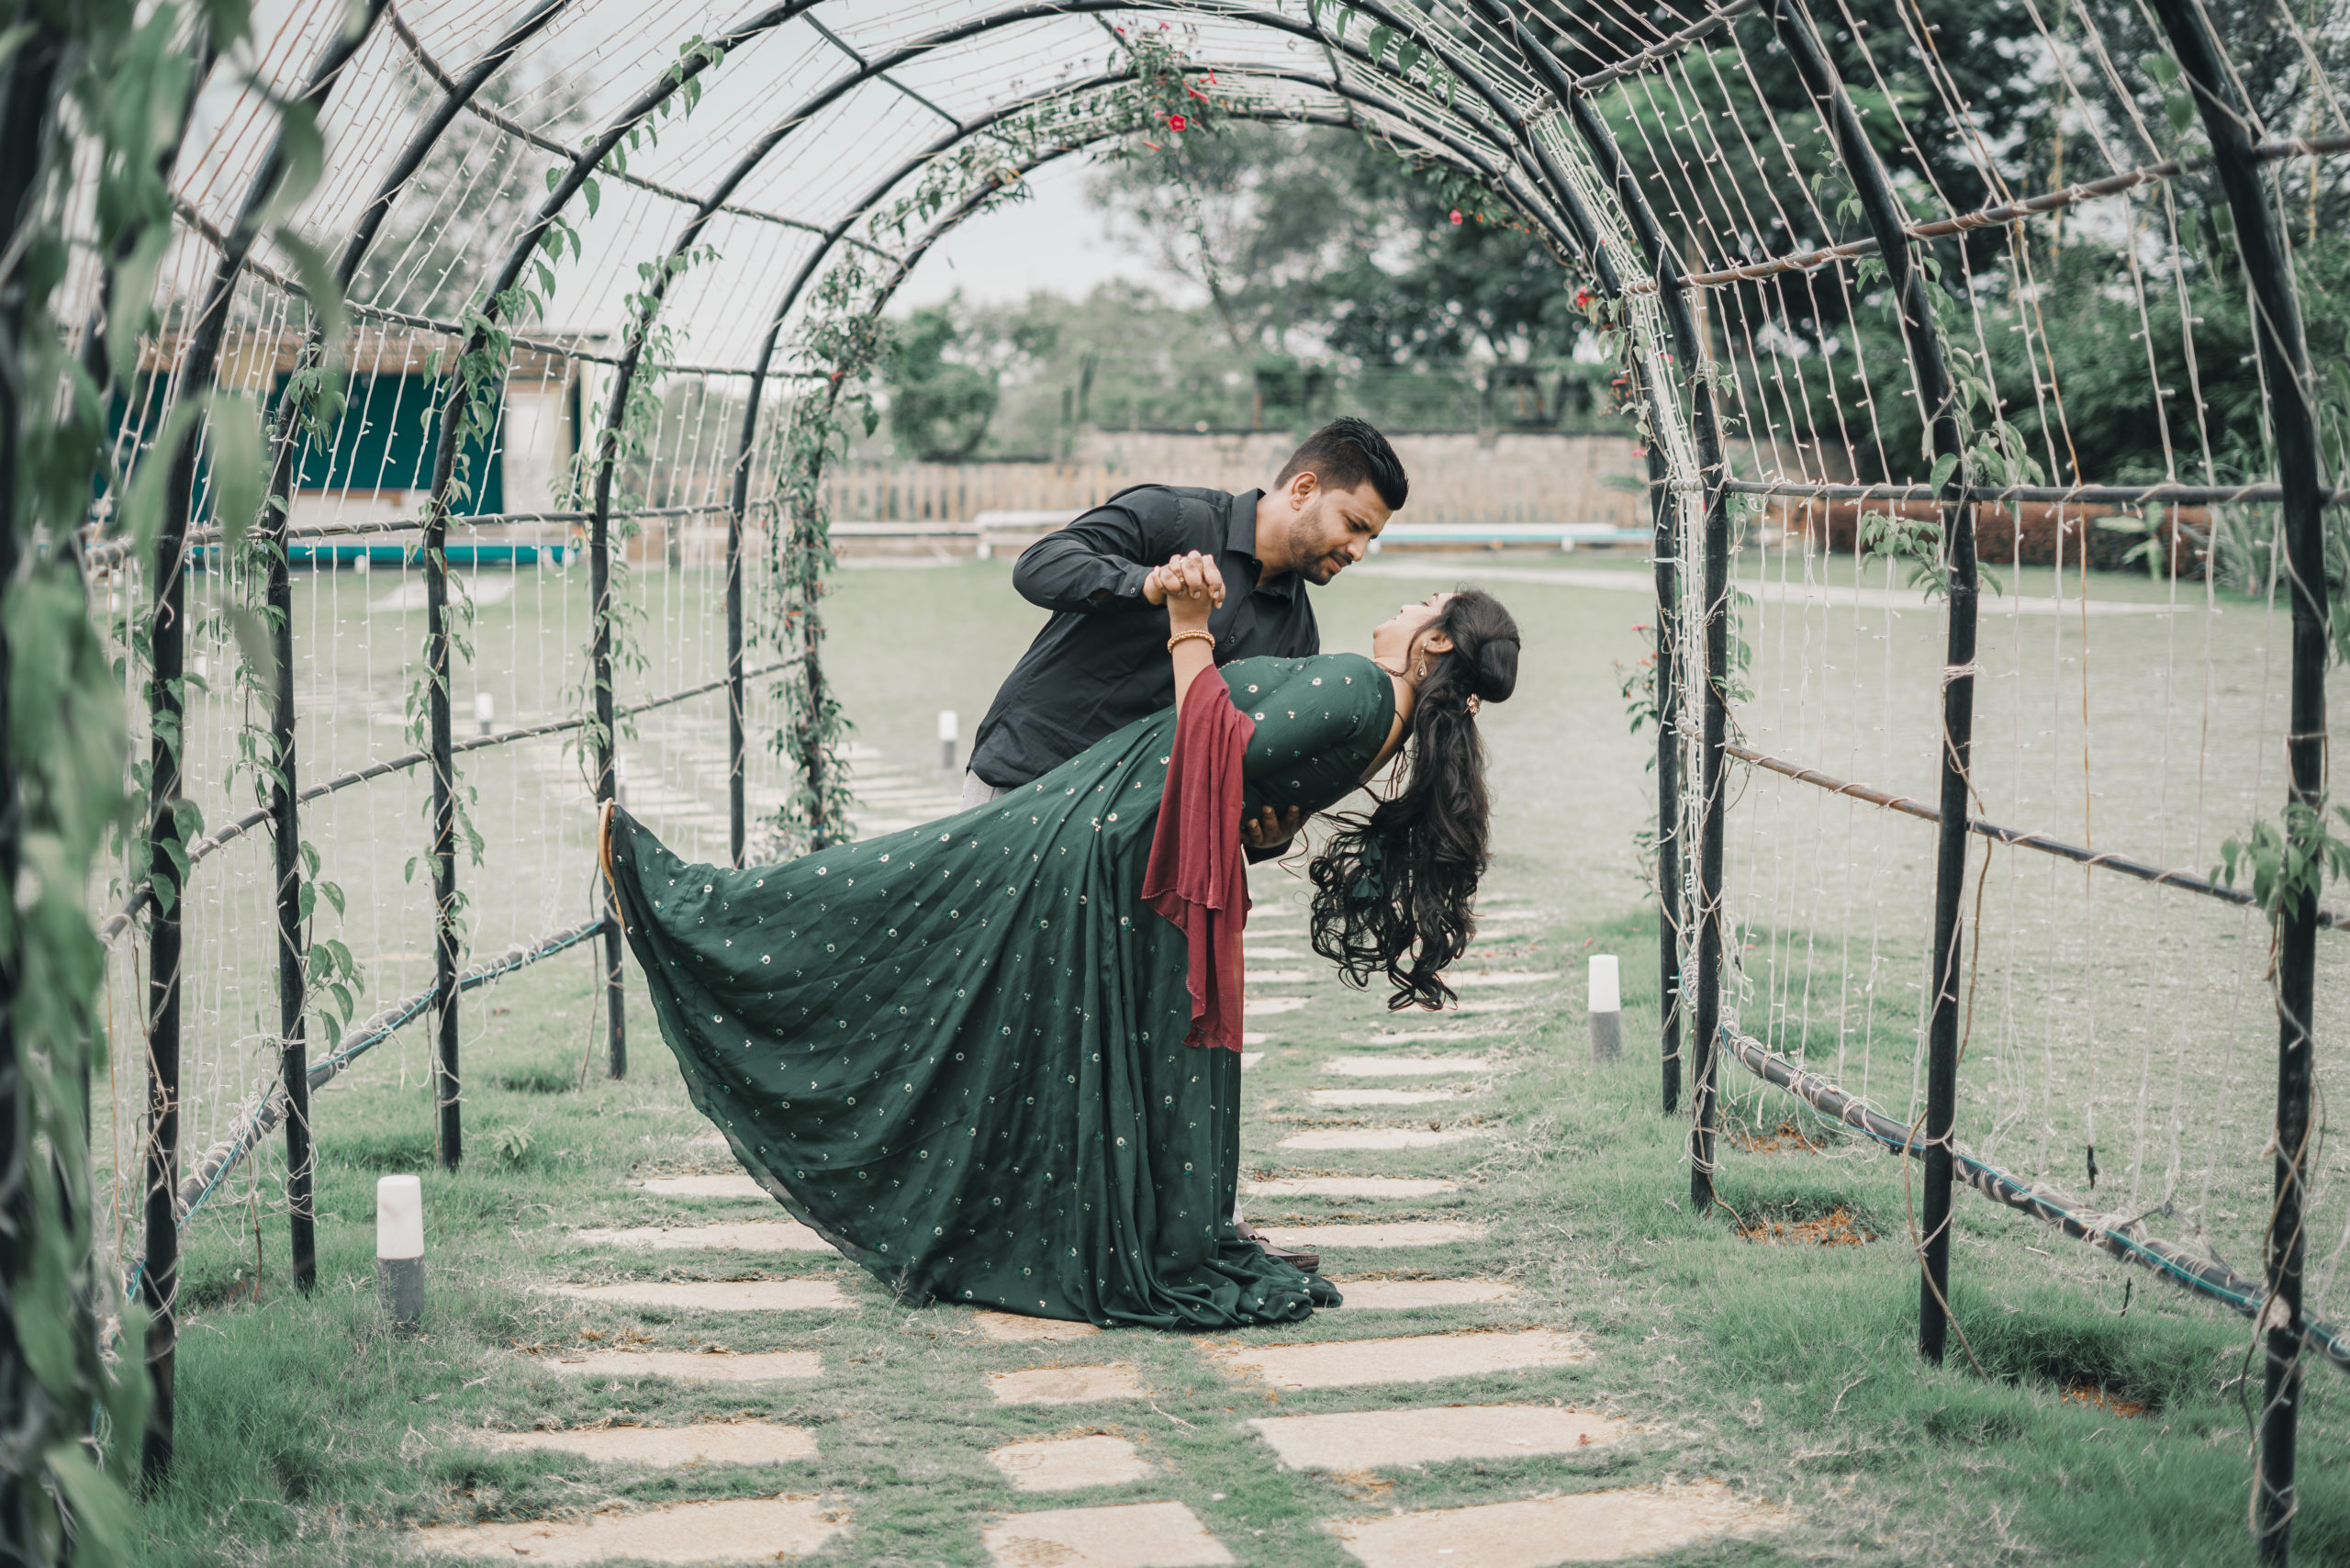 Top 5 Location For Pre-wedding Photoshoot in Bangalore